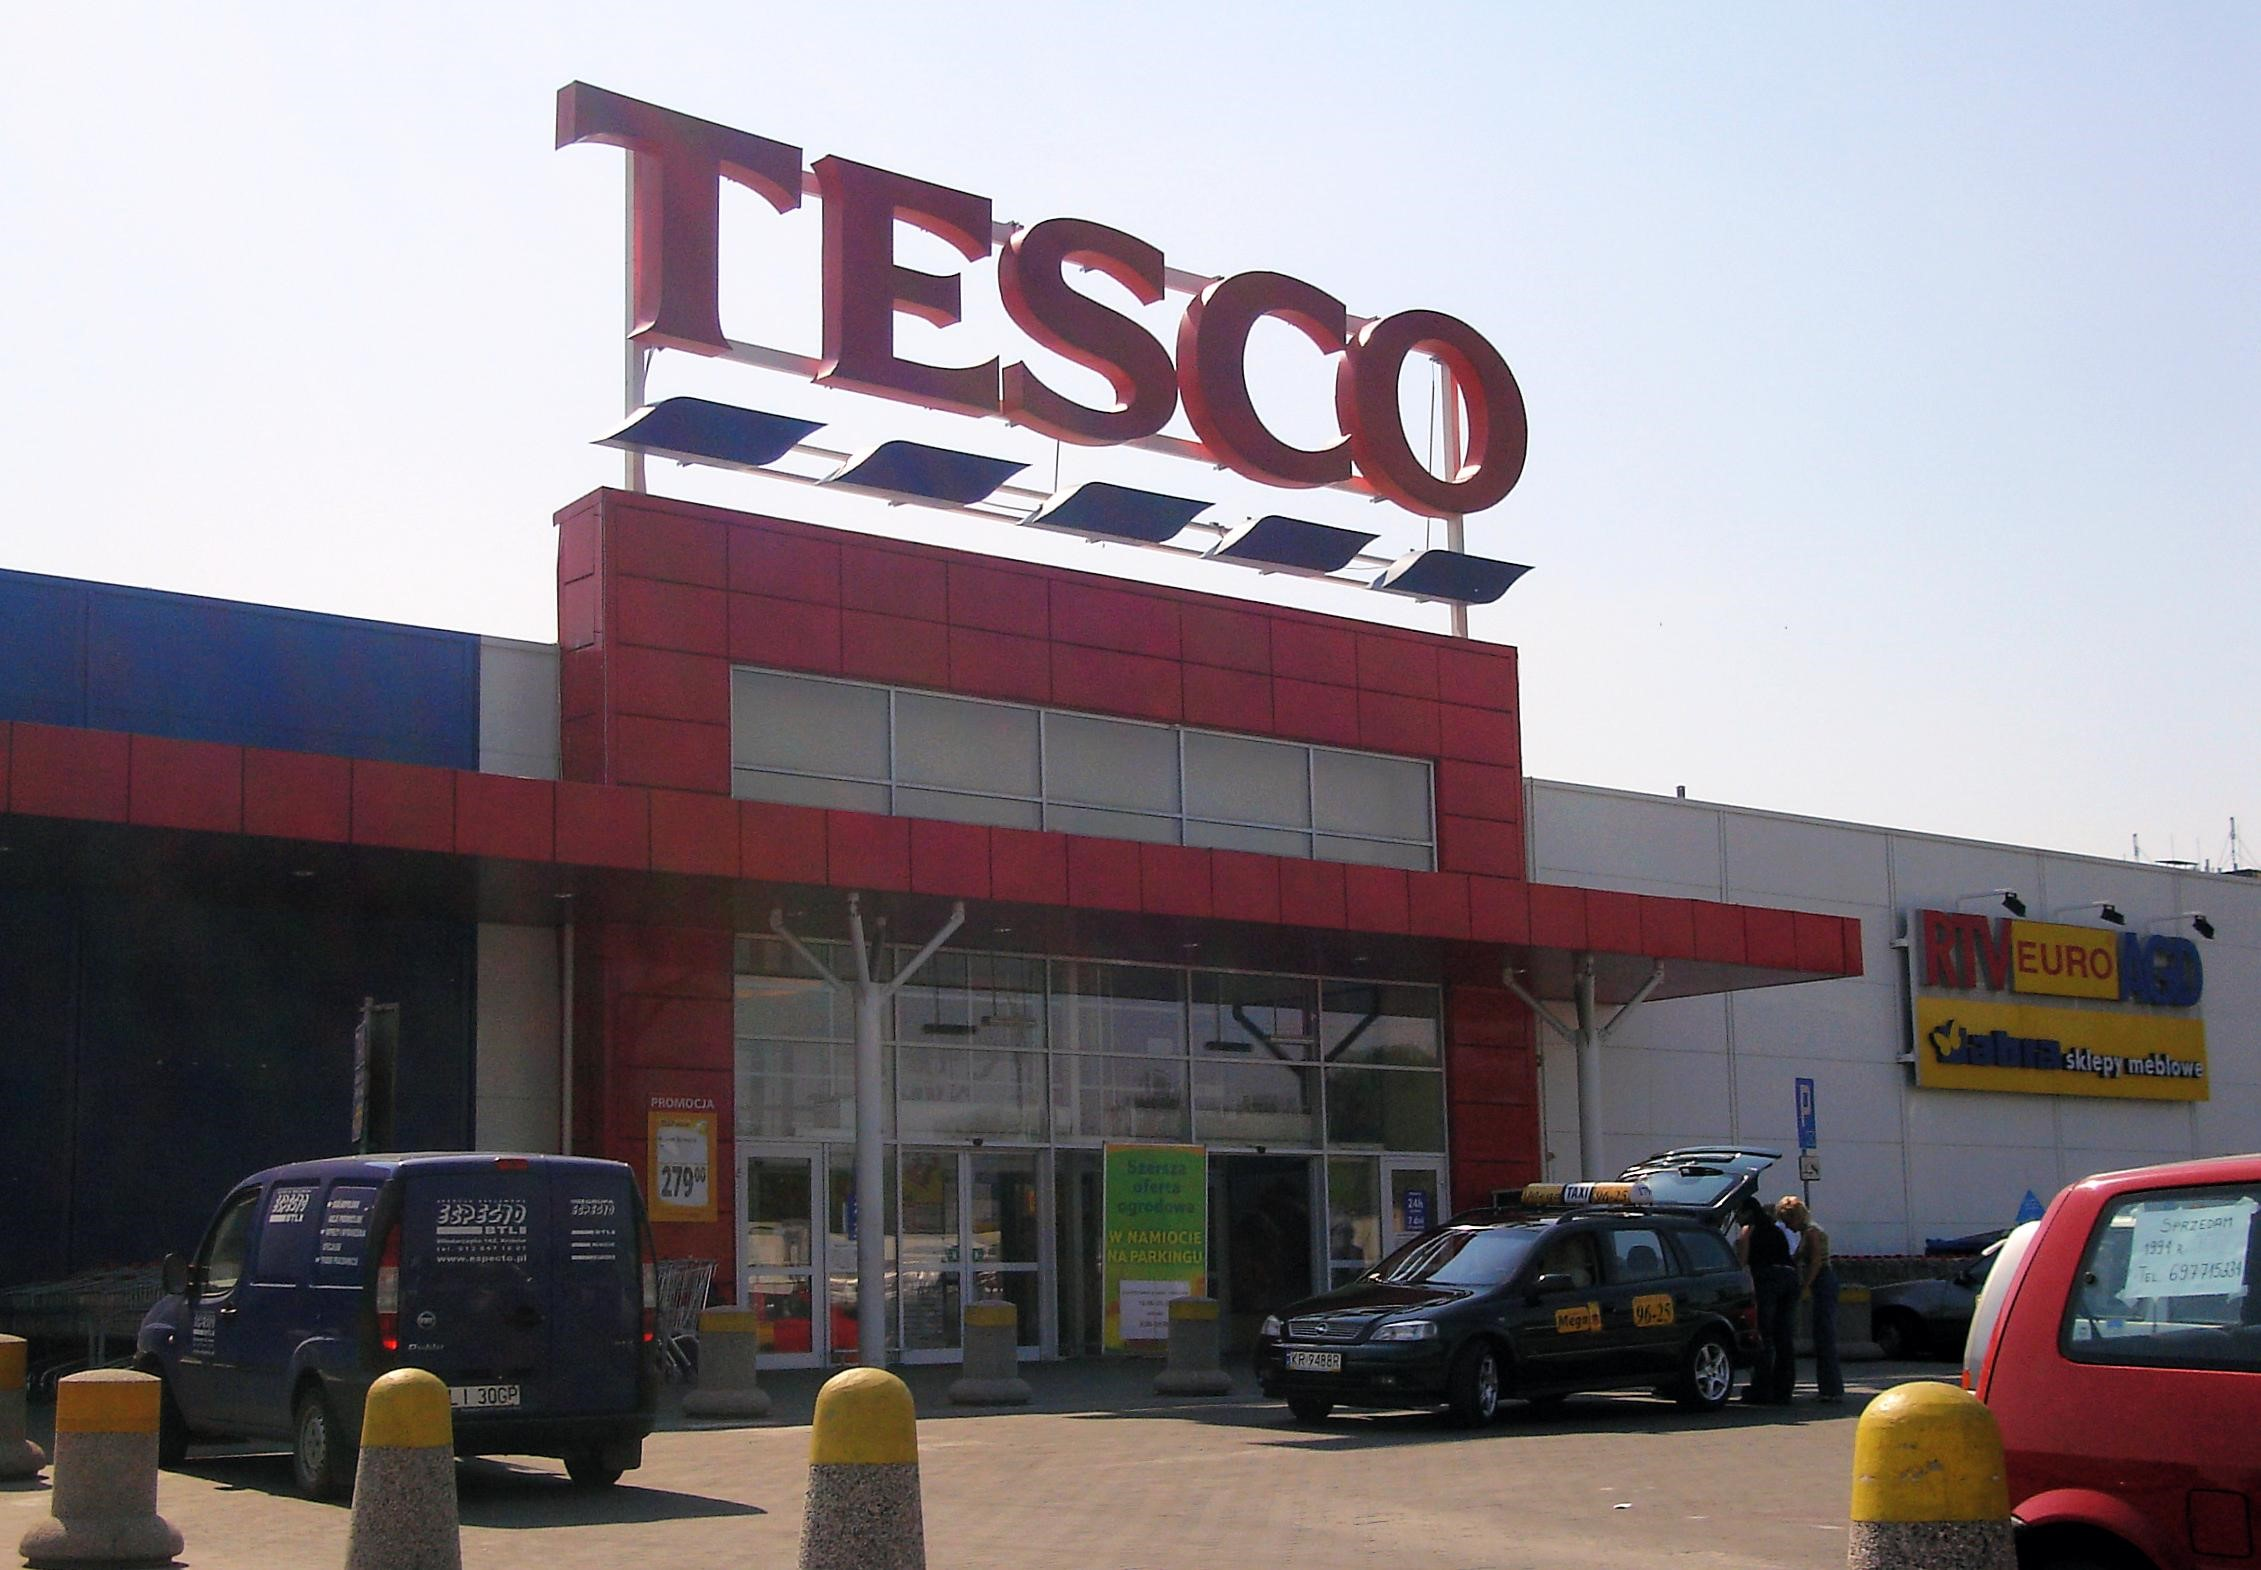 This Tesco store is in Poland but it could be in any of the 11 countries that they operate in